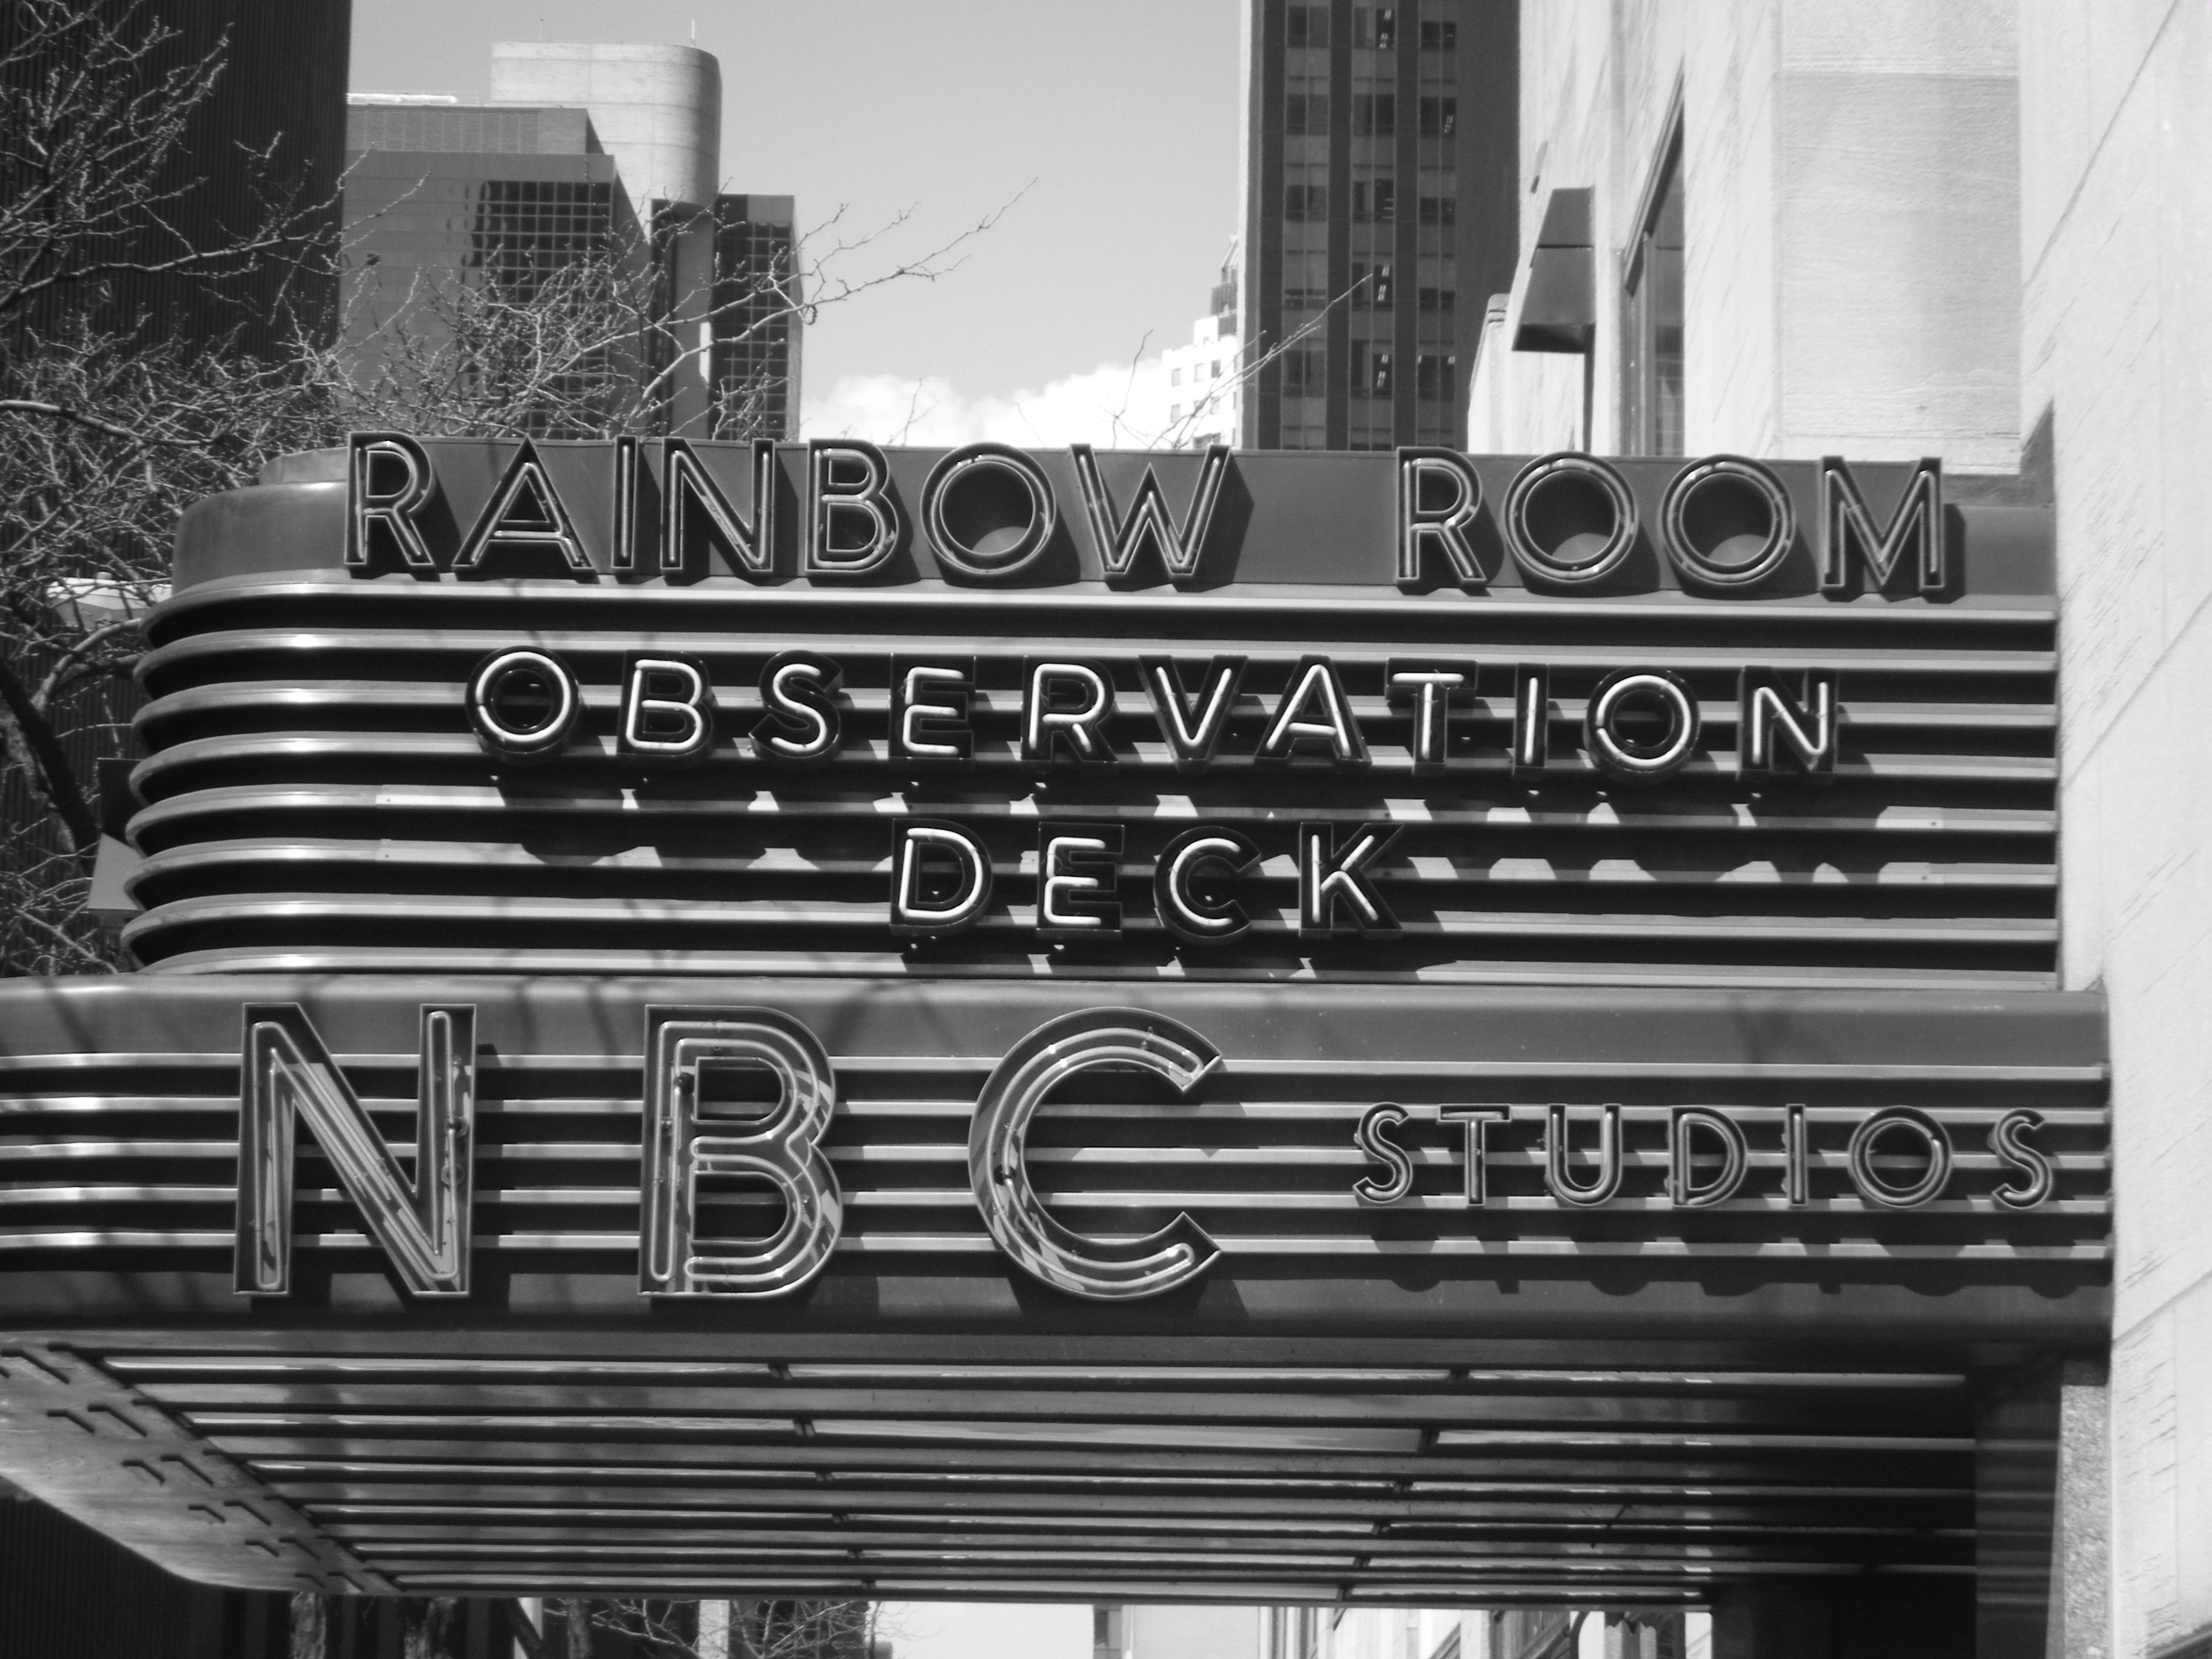 where they film SNL. NYC.